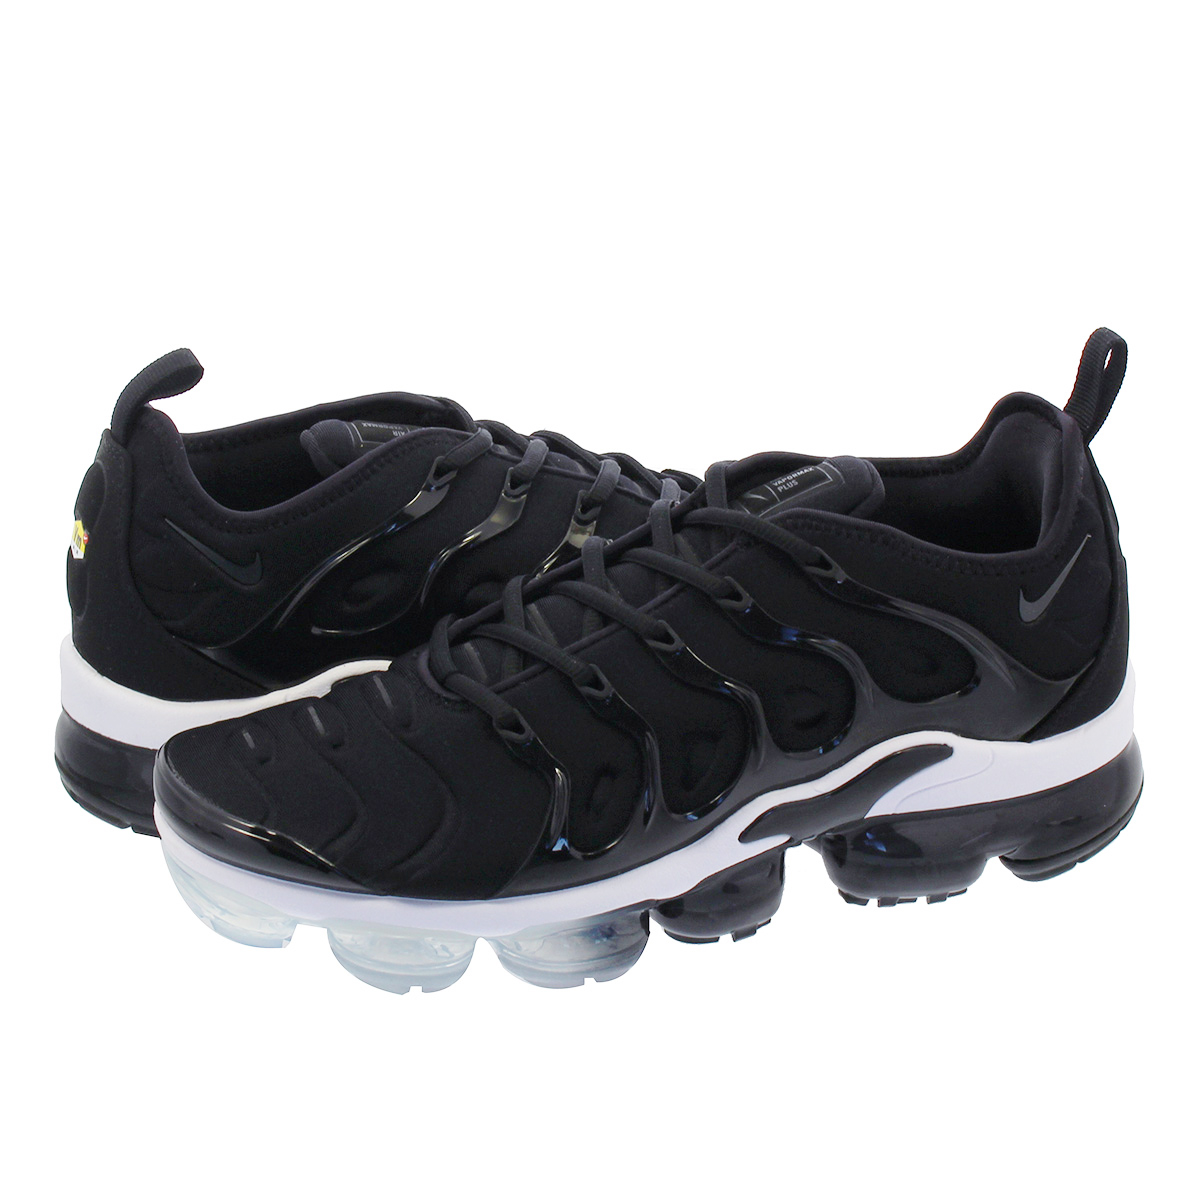 NIKE AIR VAPORMAX PLUS ナイキ ヴェイパー マックス プラス BLACK/ANTHRACITE/WHITE 924453-010